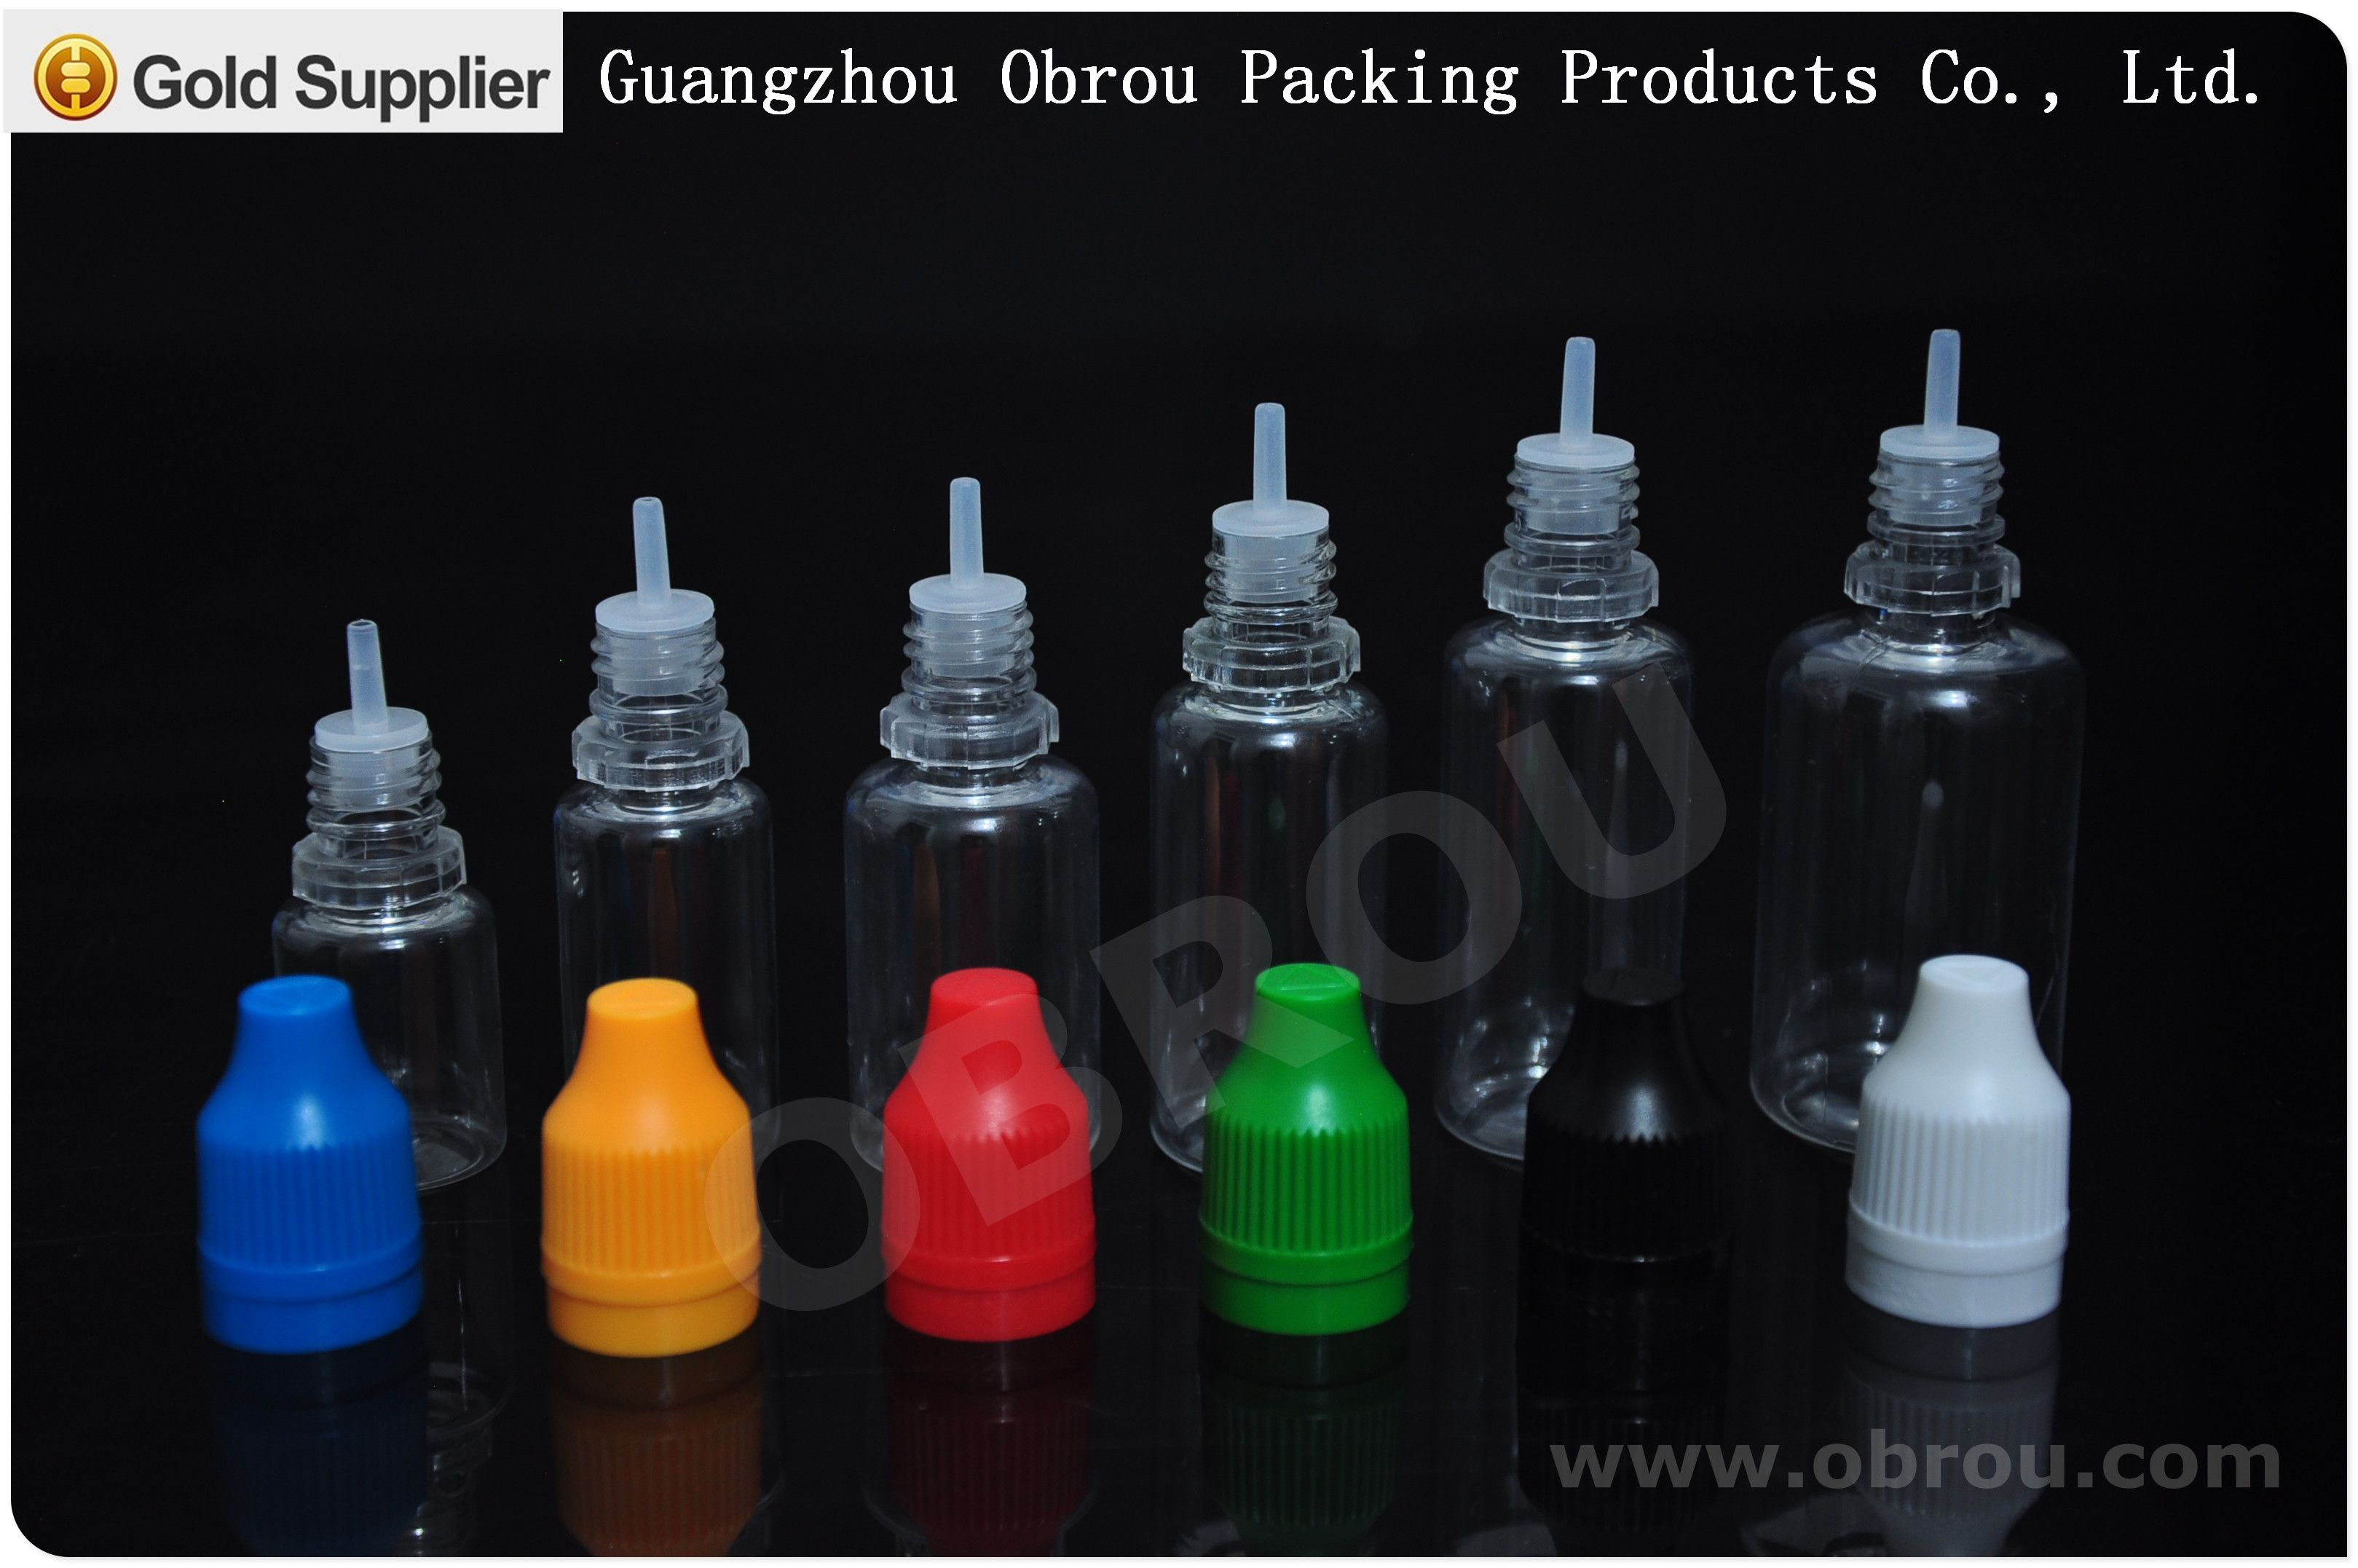 Empty Plastic Bottle 10ml 20ml 30ml Transparent Pet E Liquid Bottle 10ml E Juice Childproof Cap Dropper Bottle Empty Plastic Bottles Plastic Bottles Bottle